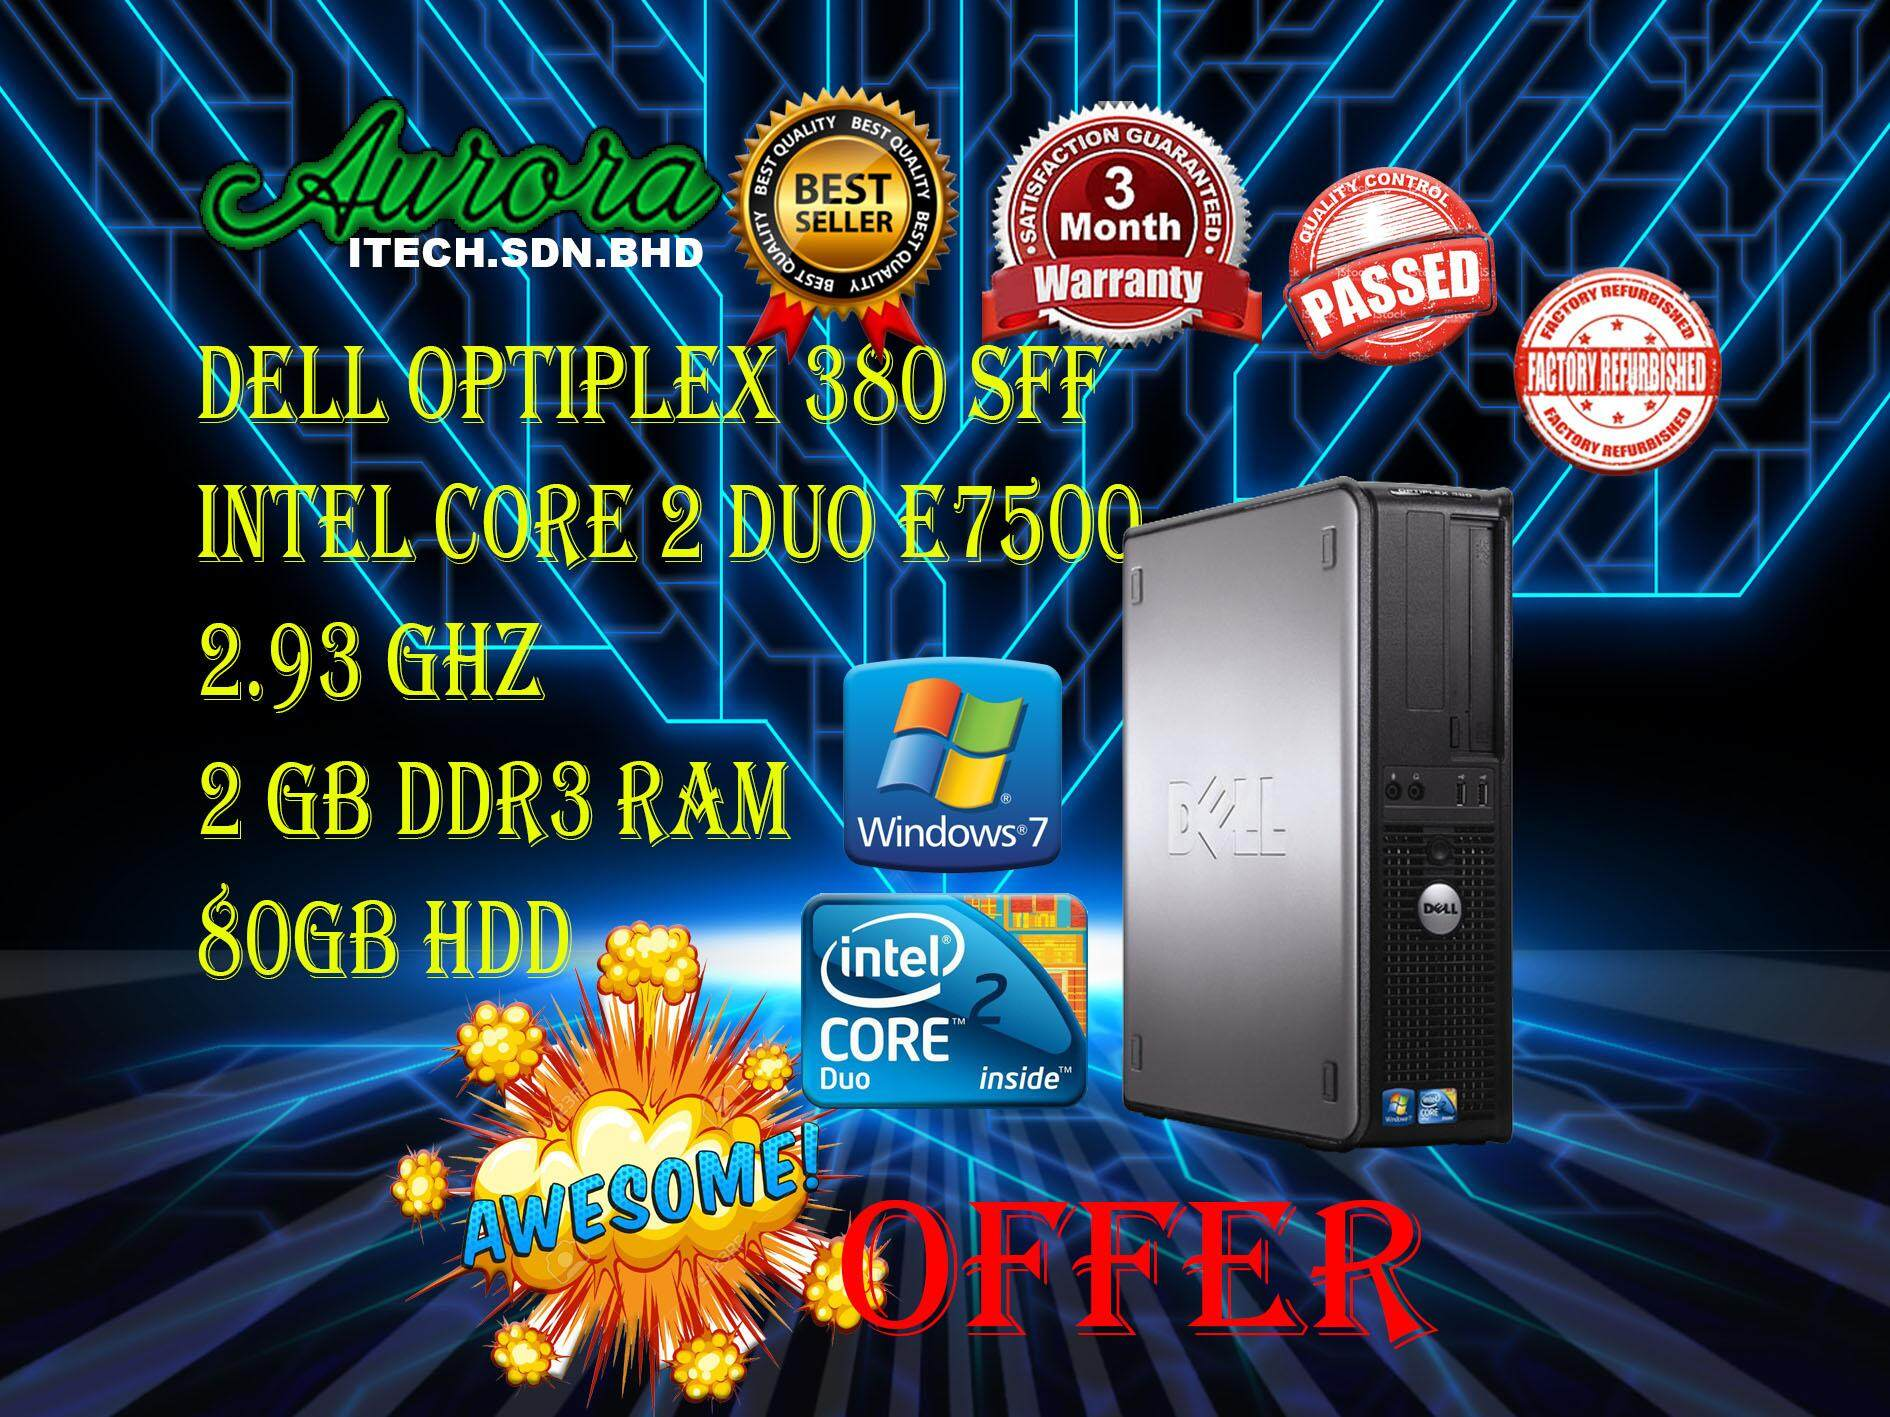 (REFURBISHED)Dell Optiplex 380 C2D DDR3 SFF Desktop / Intel Core 2 Duo  E7500 2 93 GHZ / 2GB DDR3 Ram / 80 GB HDD / 3 Month Warranty / Free KB And